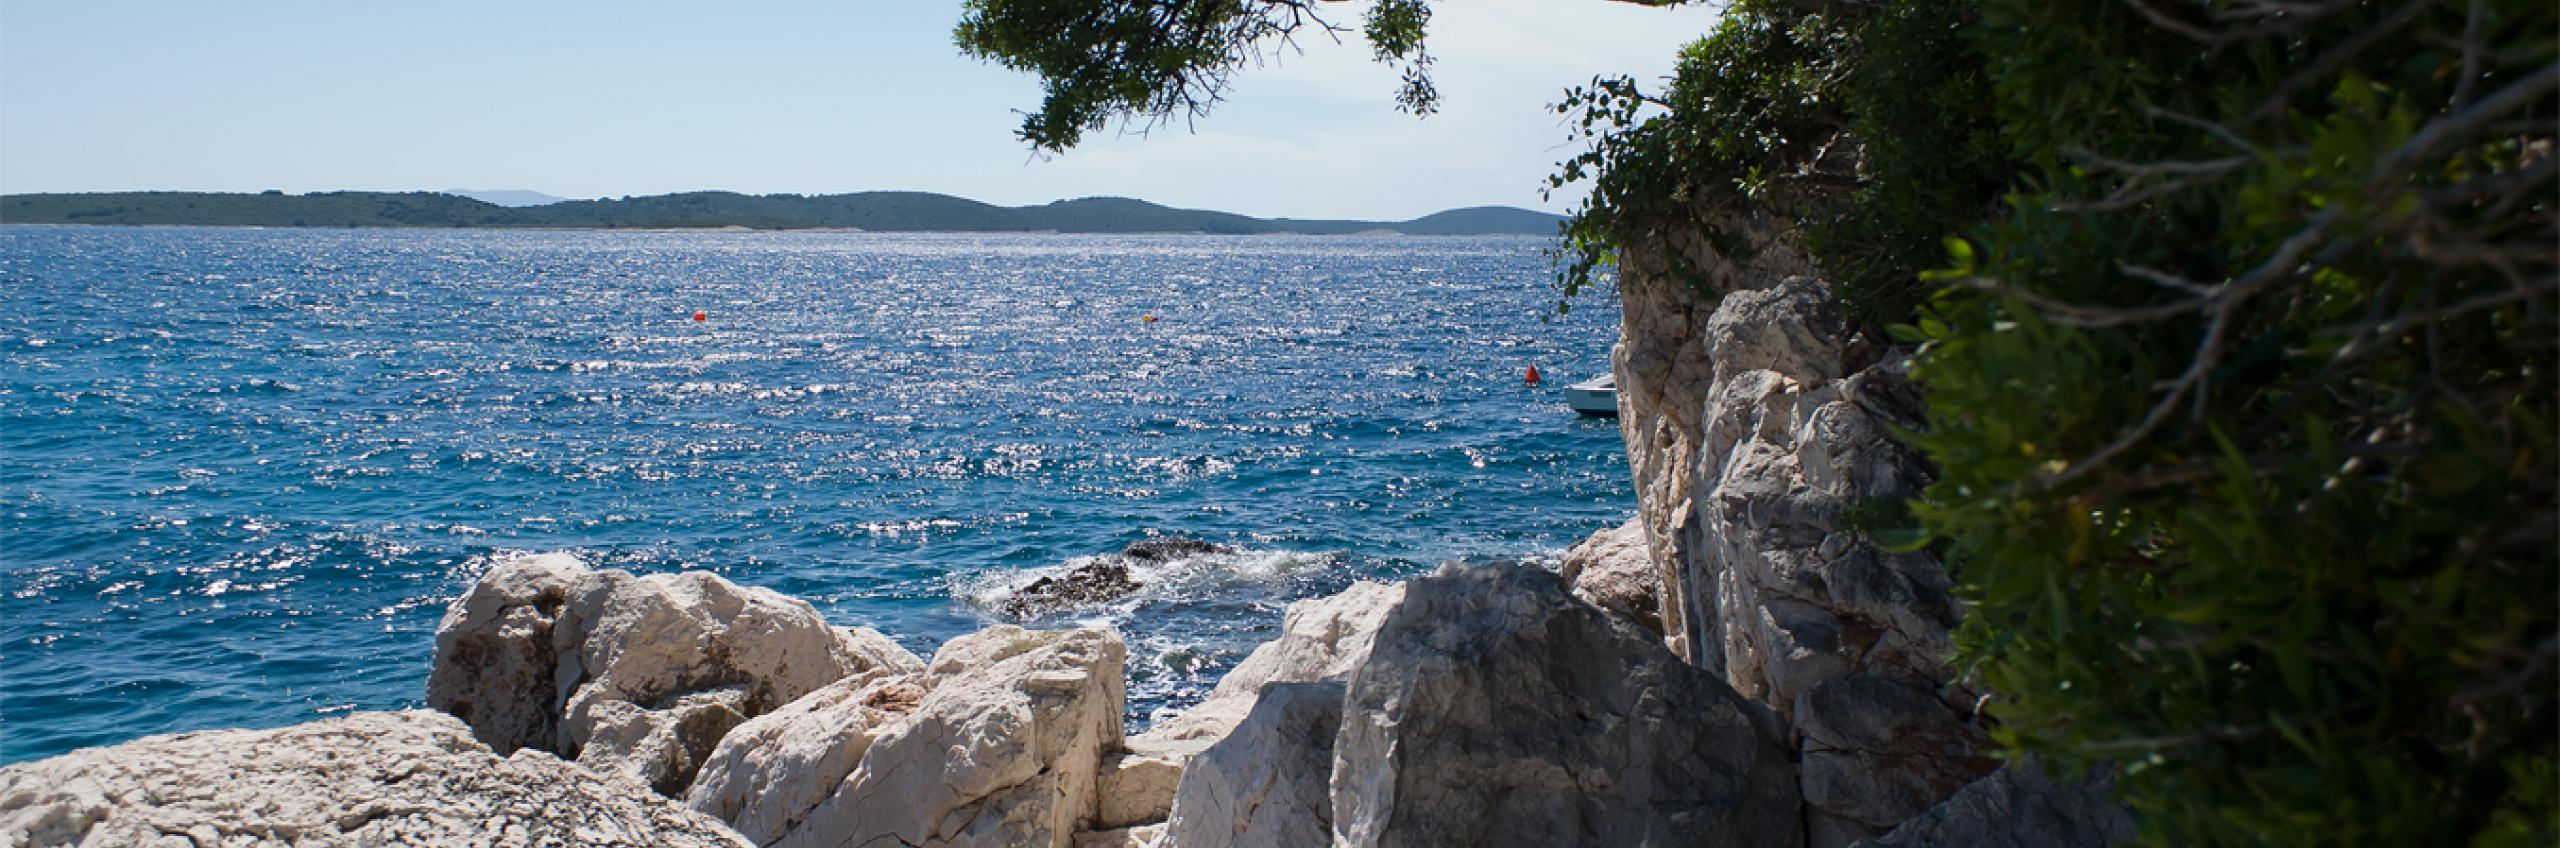 Try winter sunshine holidays in Hvar!